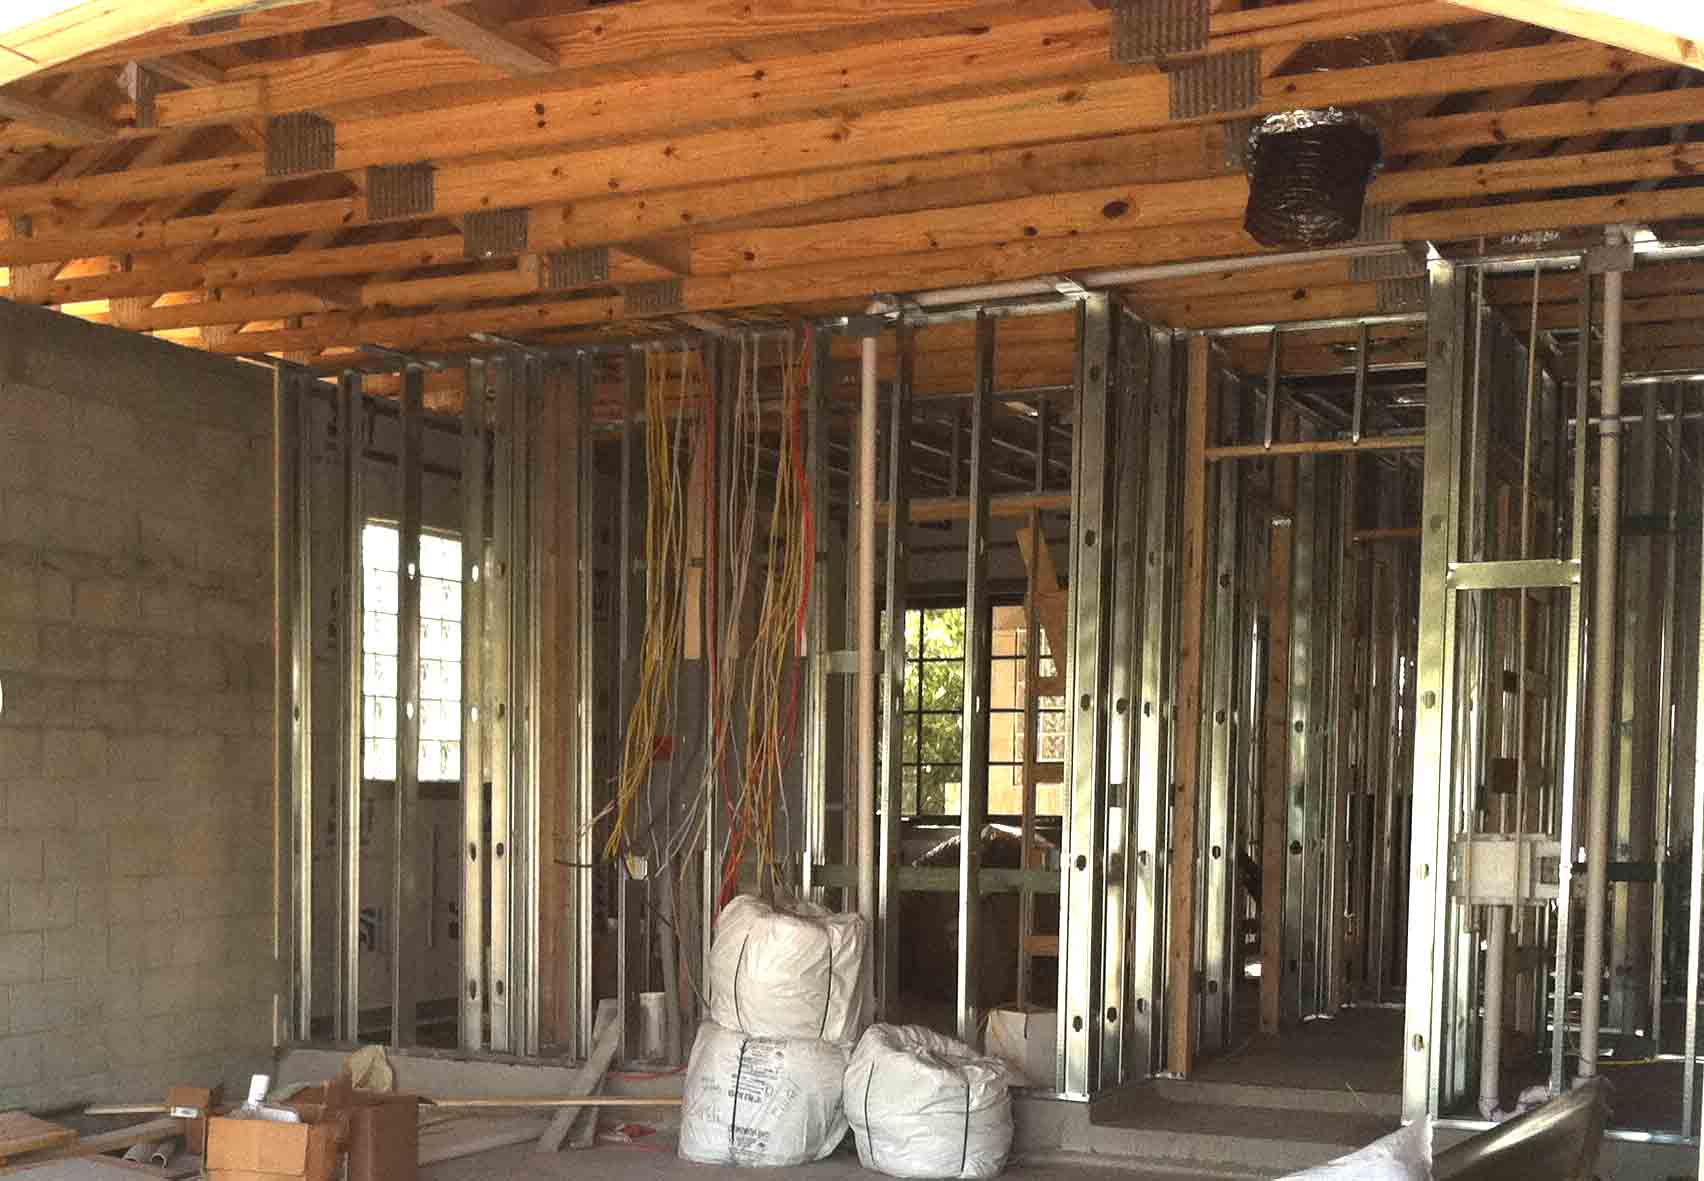 Naples house building methods and construction for House inside metal building